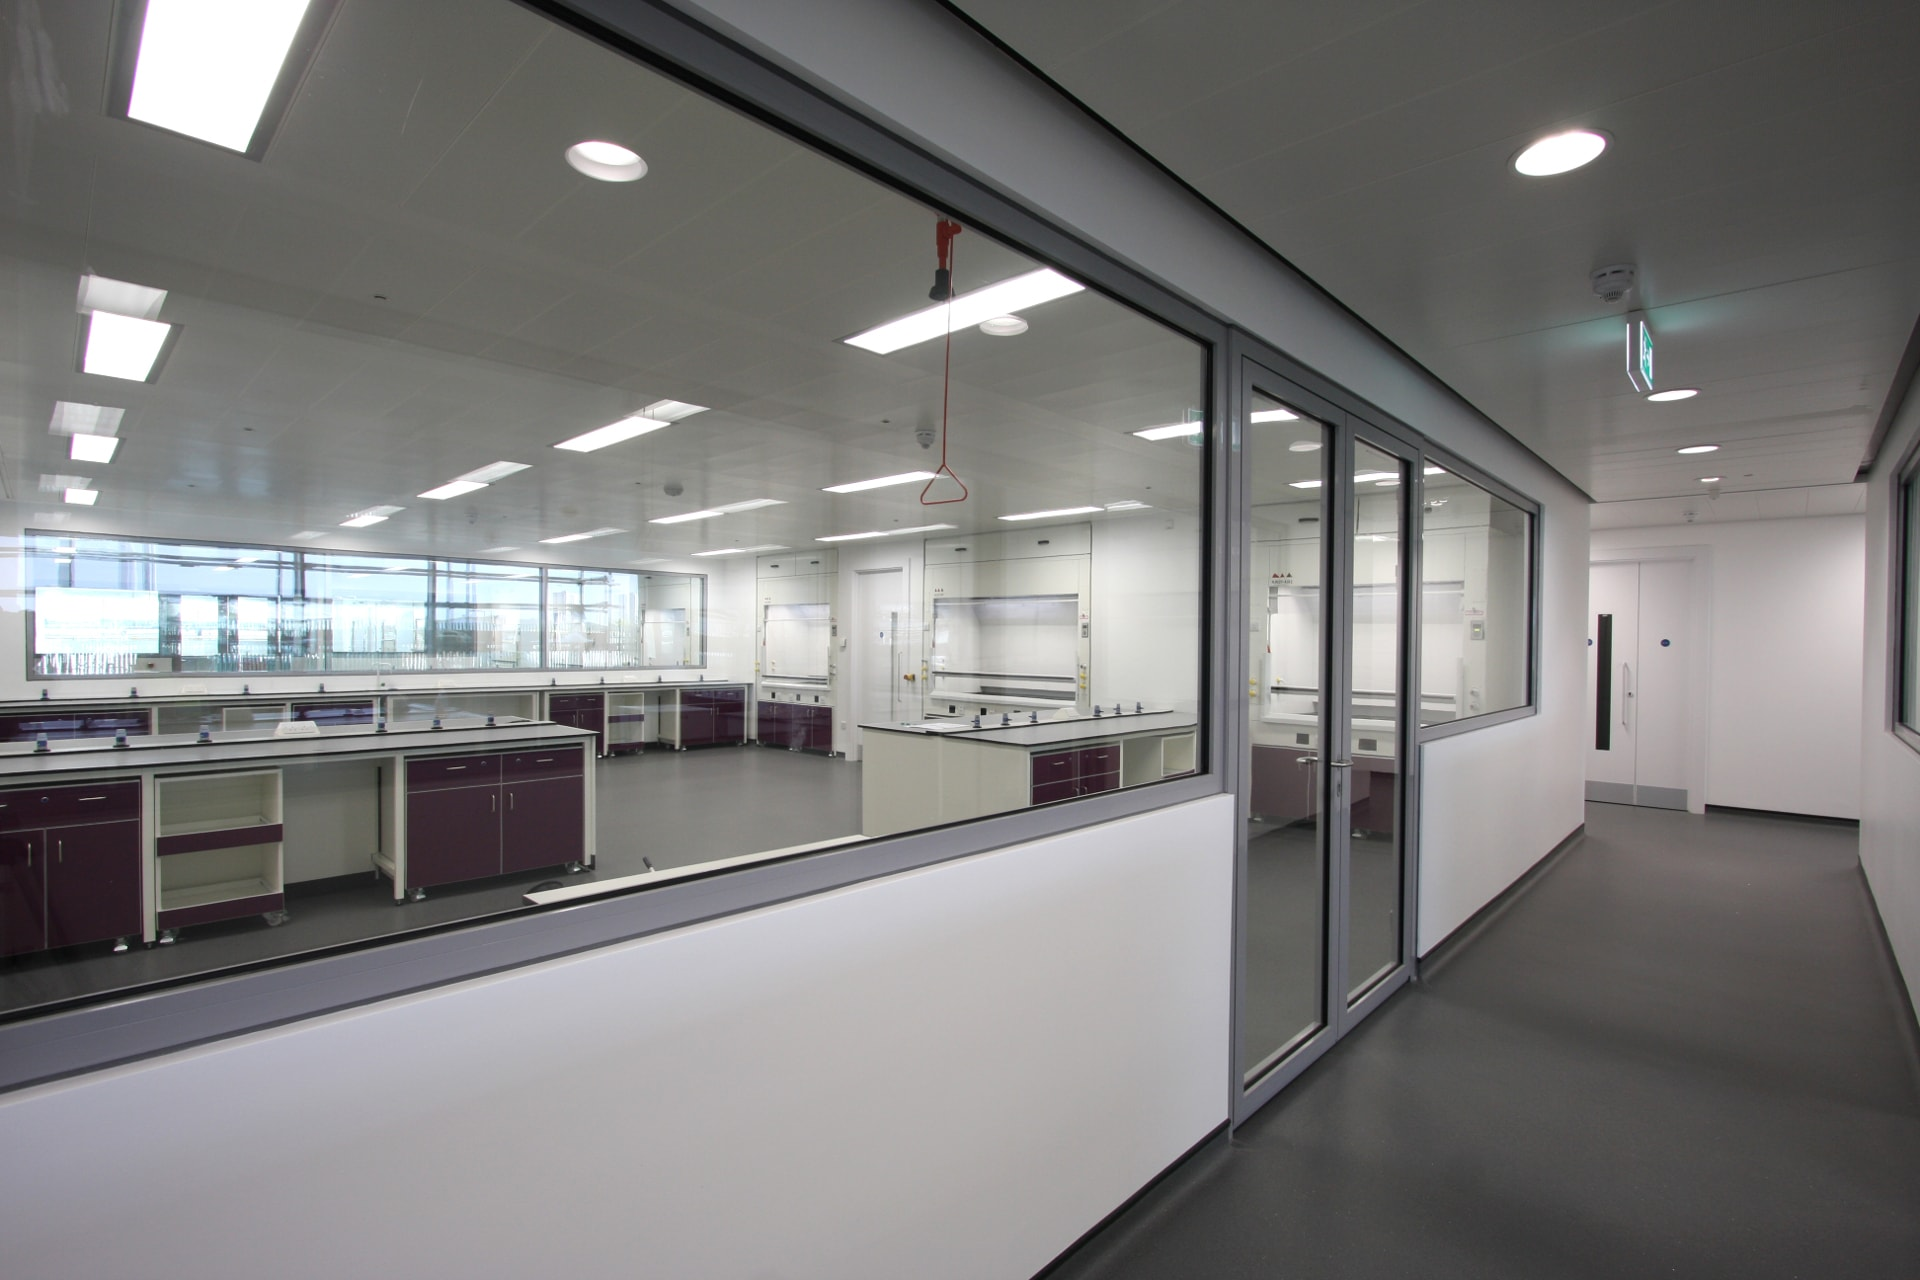 fire rated glass to laboratory corridor